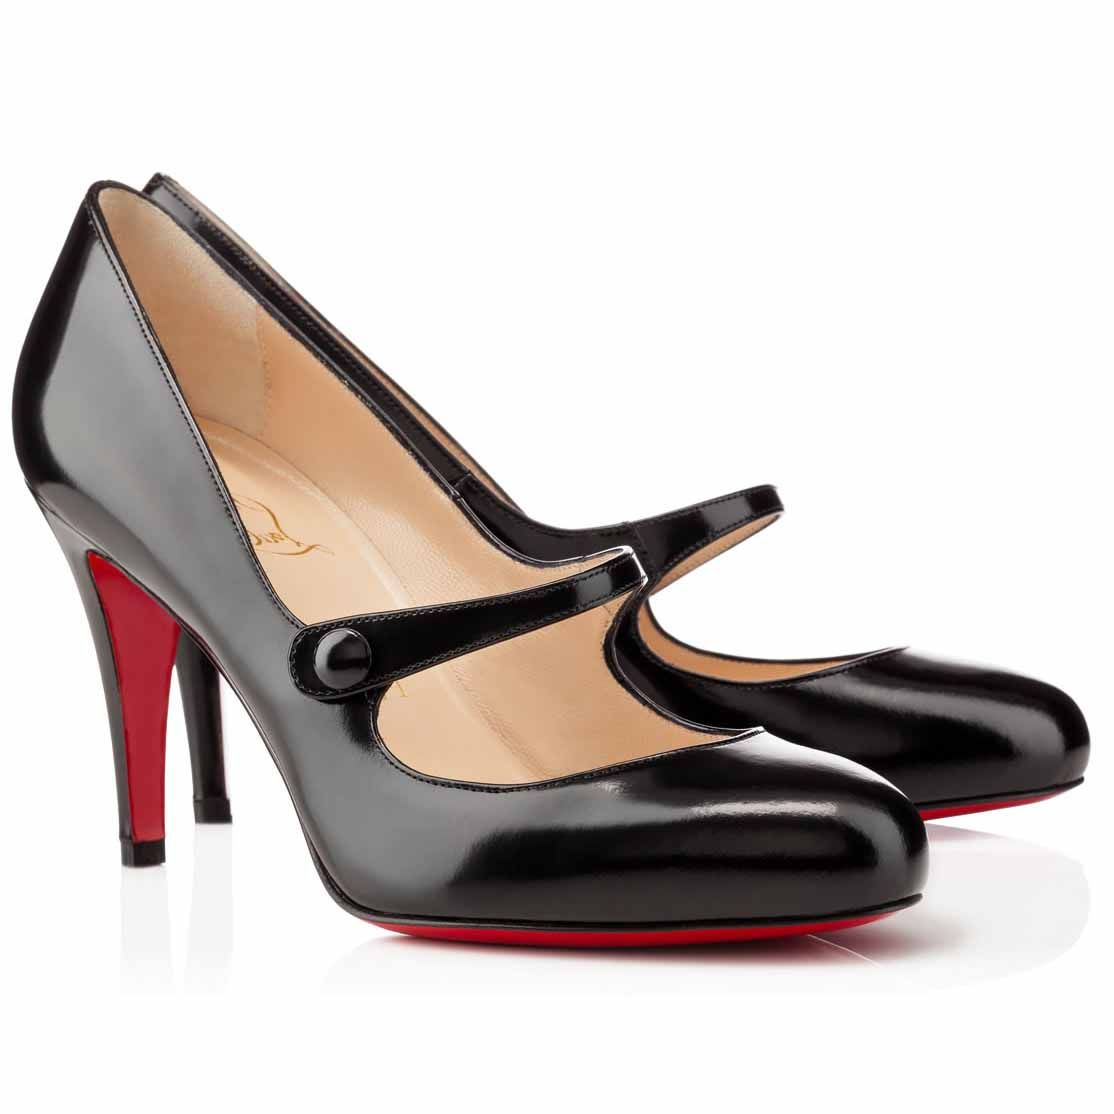 100% authentic 3c75f 3ae37 Christian Louboutin Charleen 85mm Leather Mary Jane Pumps ...